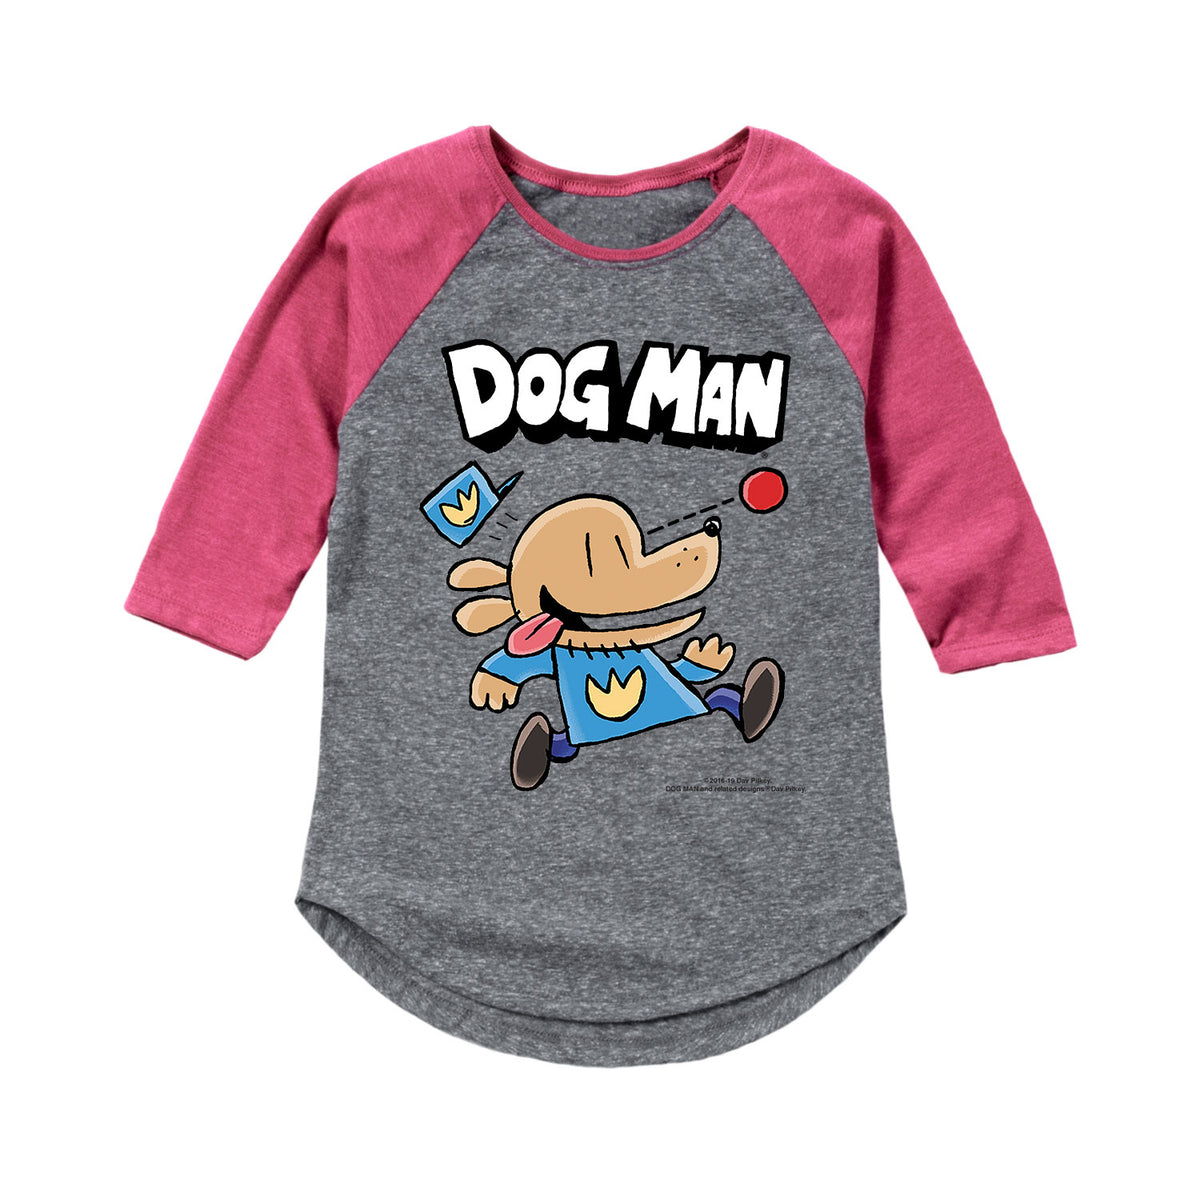 Dog Man Chasing Ball - Youth & Toddler Girls Raglan